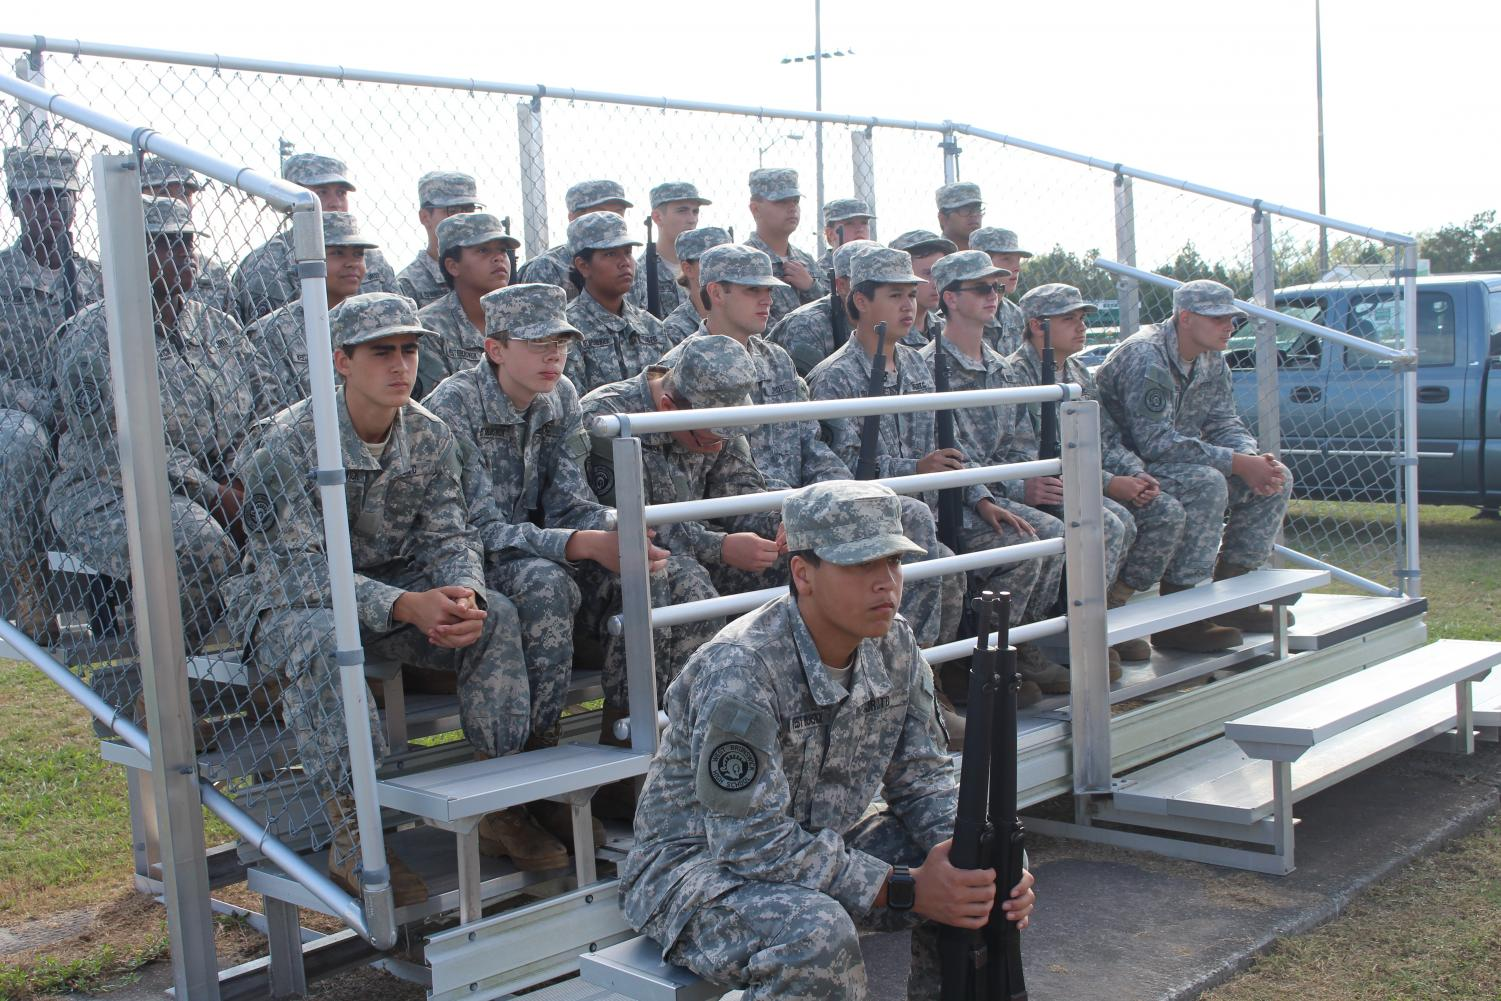 Cadets waiting to perform their routines.